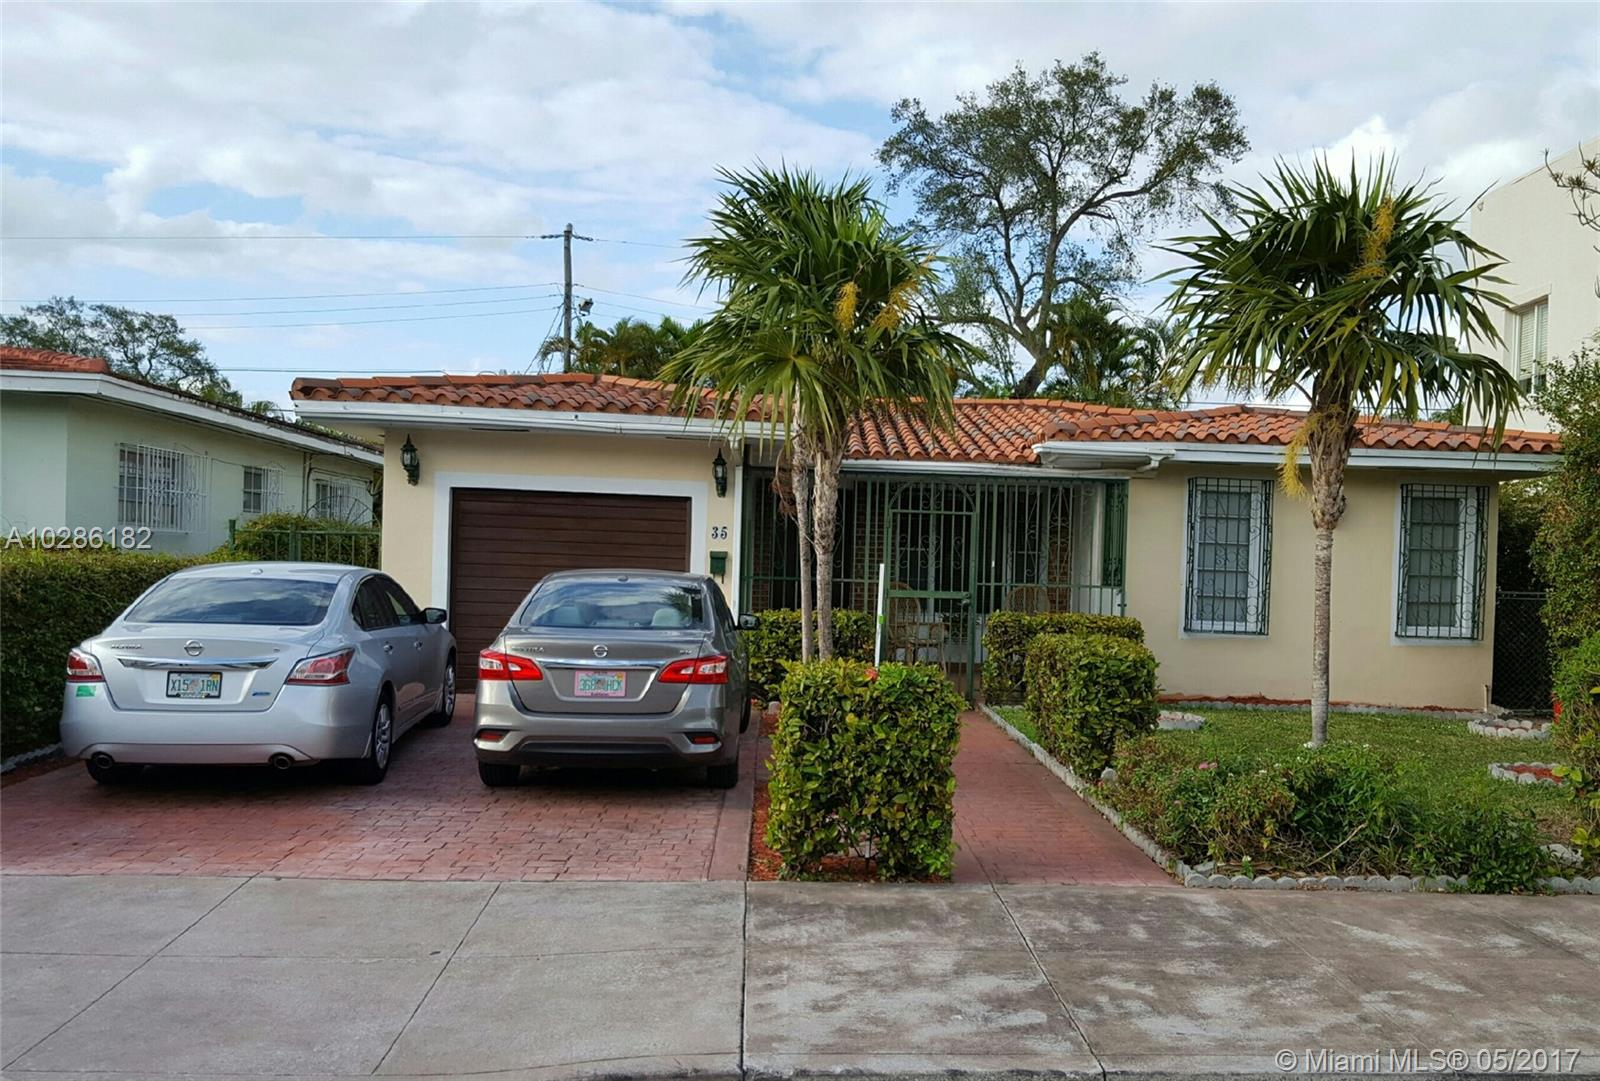 35 Oviedo Ave, Coral Gables , FL 33134